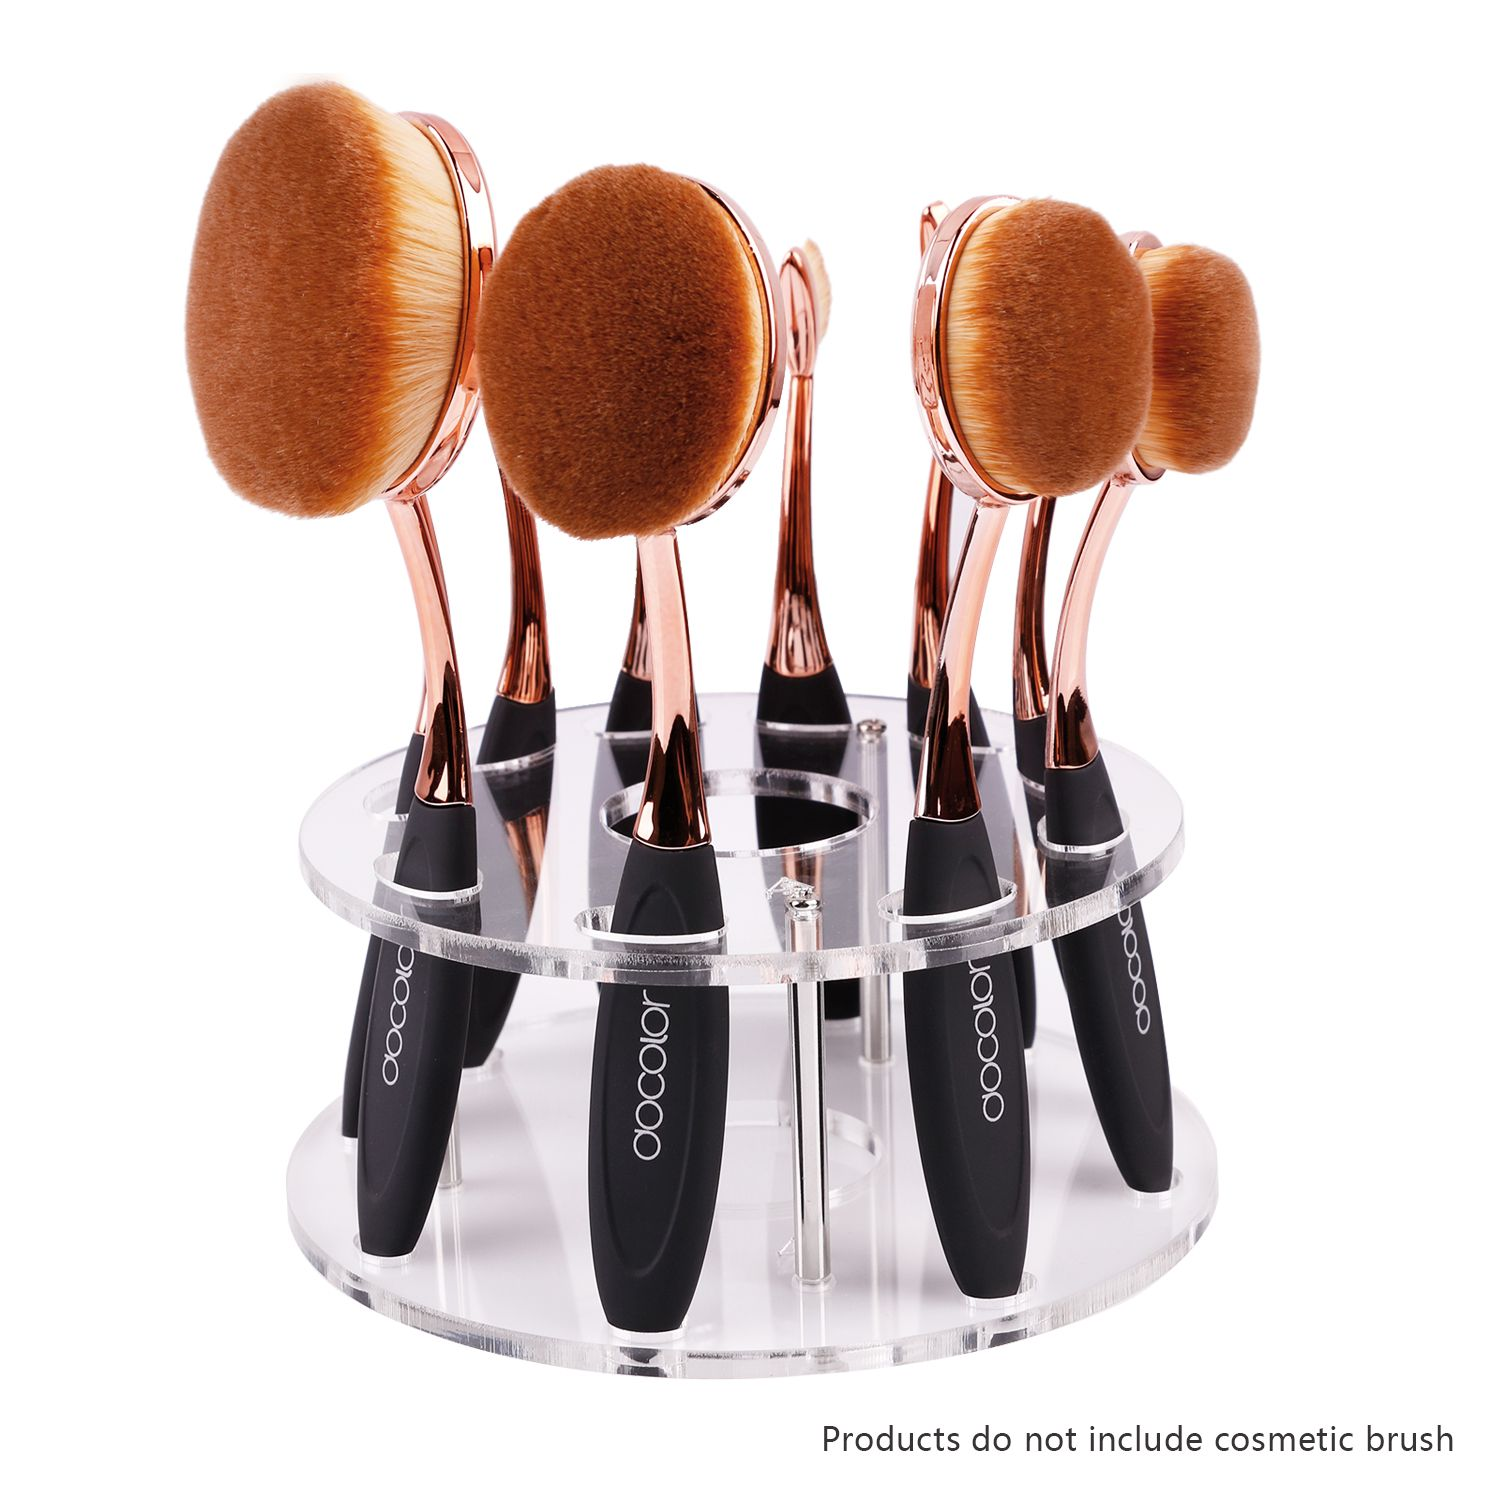 Pin by Aimee on Amazon Beauty. Oval brush set, Makeup